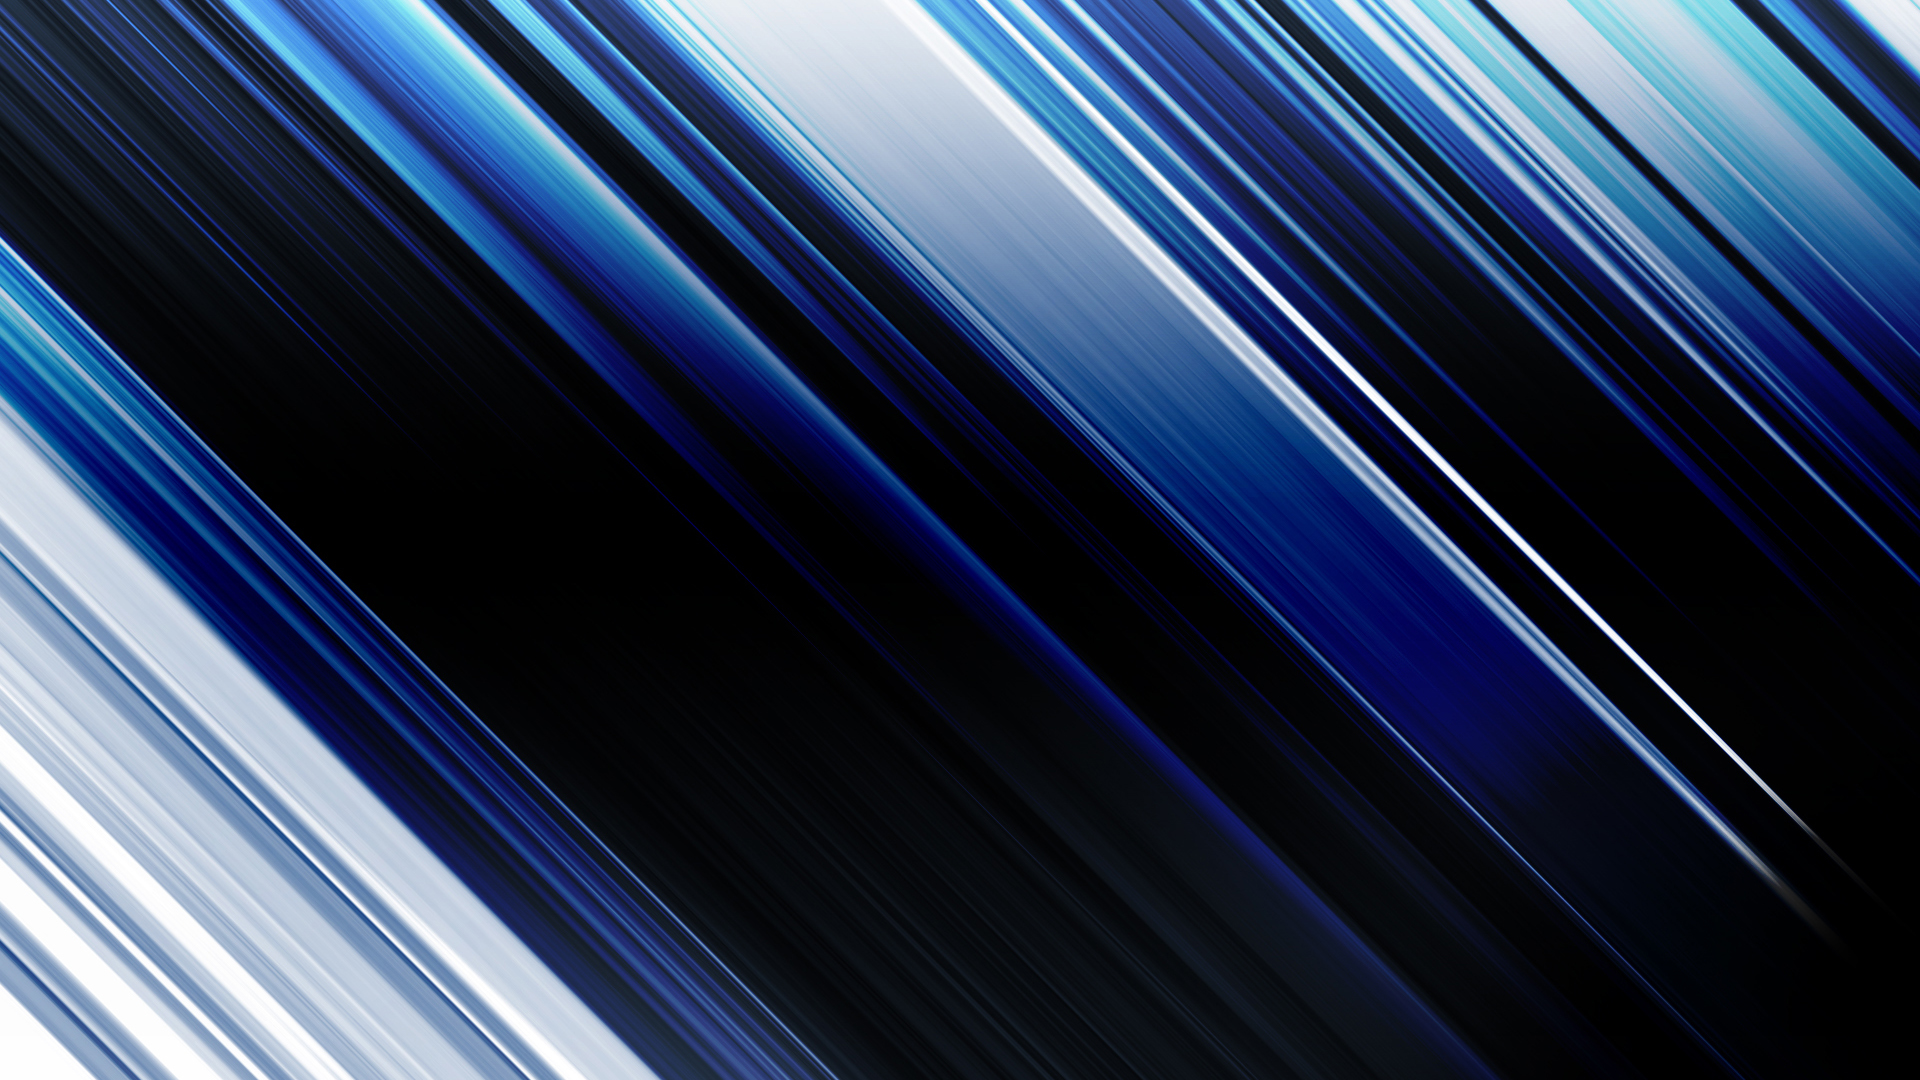 abstract blue lines motion HD Wallpaper